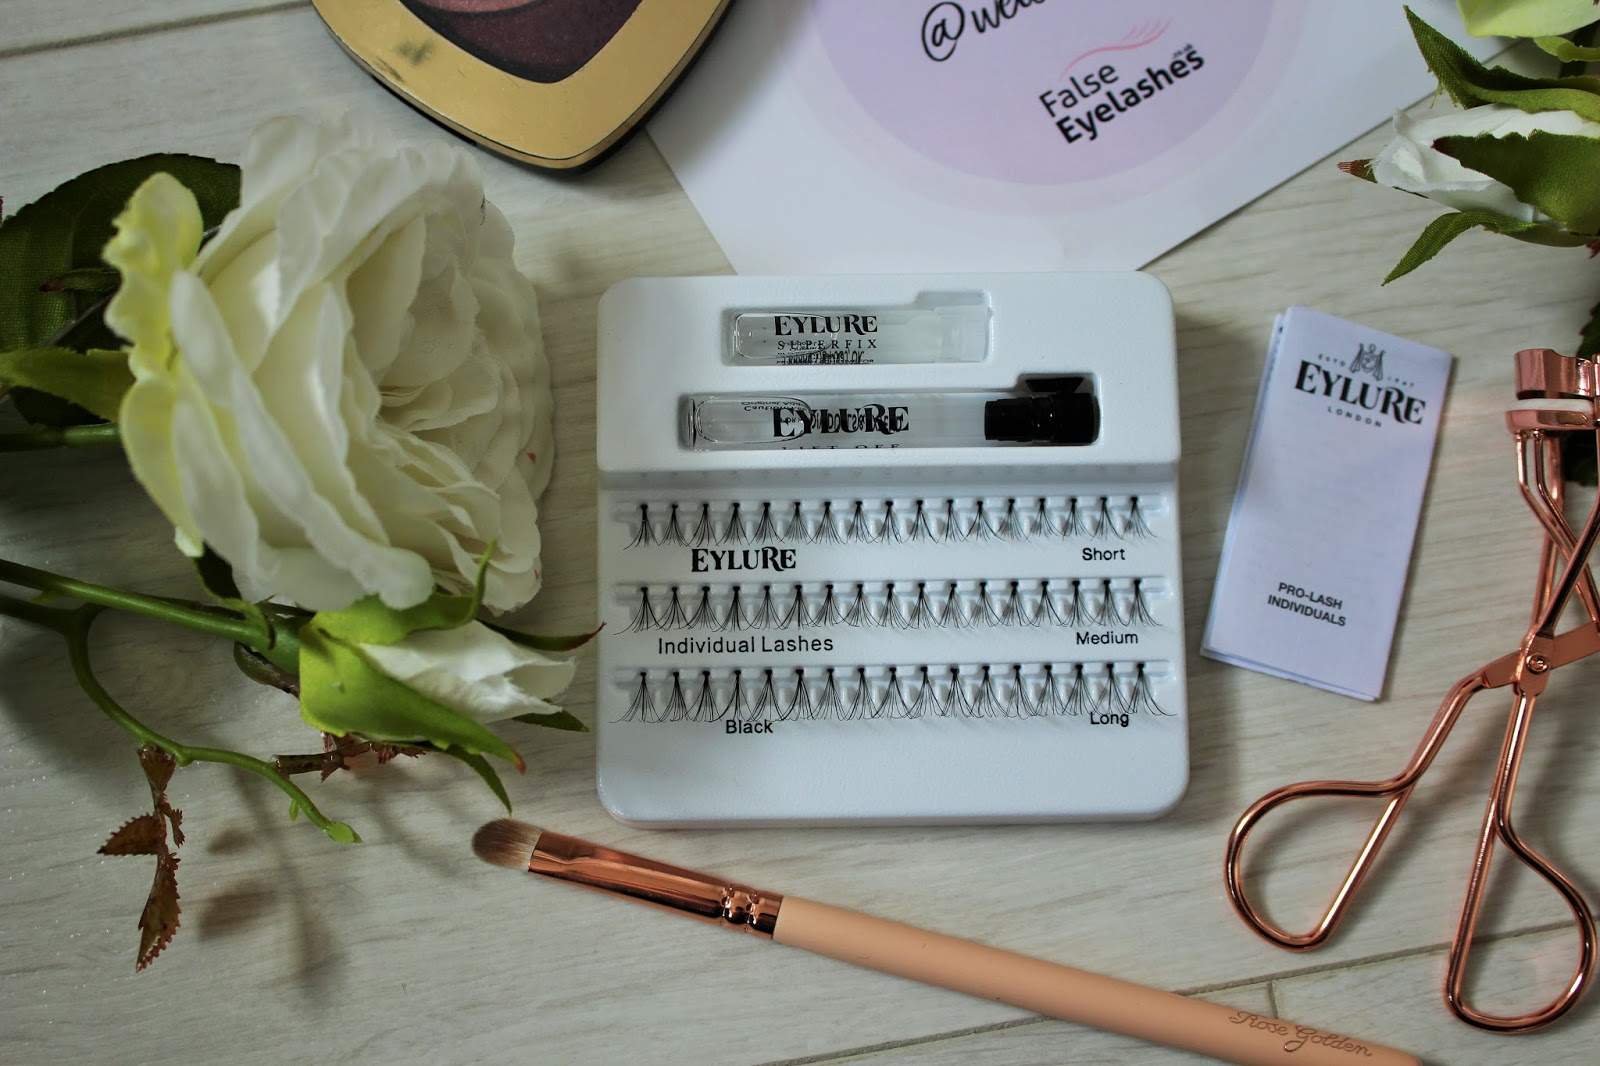 Eylure lashes from falseeyelashes.co.uk - 6 - Pro-lash individual lashes